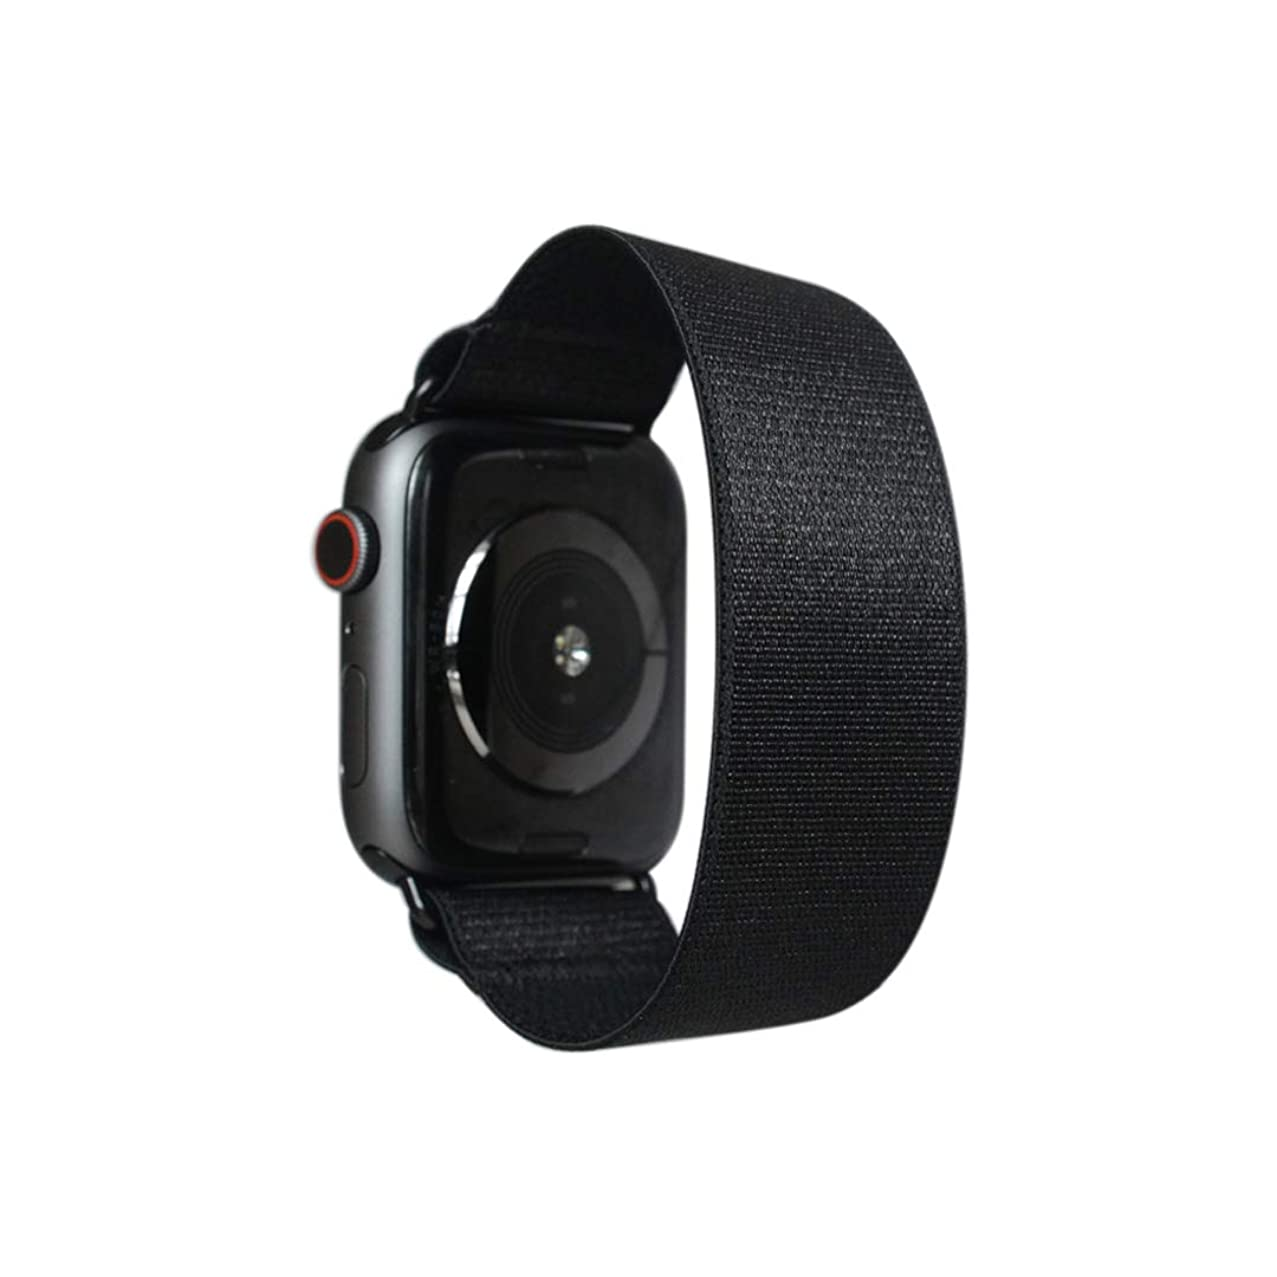 Tefeca Black Satin Elastic Compatible/Replacement Band for Apple Watch 38mm 40mm 42mm 44mm (Black Adapter for 38mm/40mm Apple Watch, Wrist Size : 6.0-6.4 inch (L2))